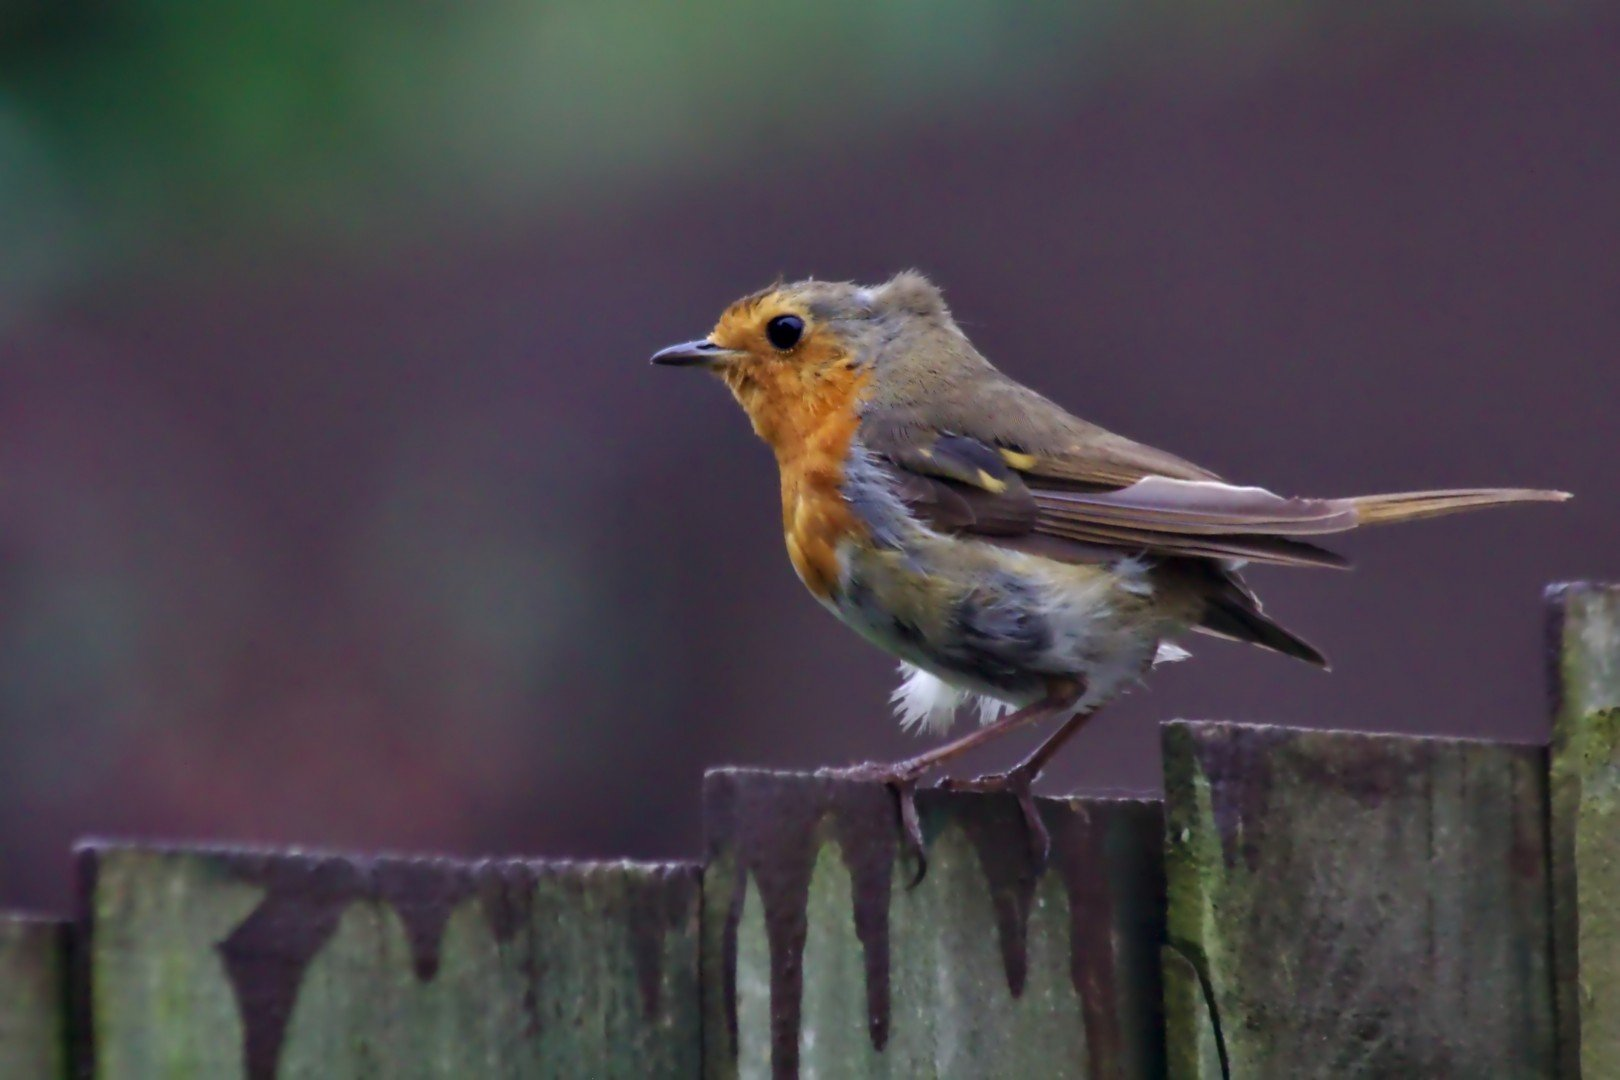 Red Breas Robin on a fence in heavy wind